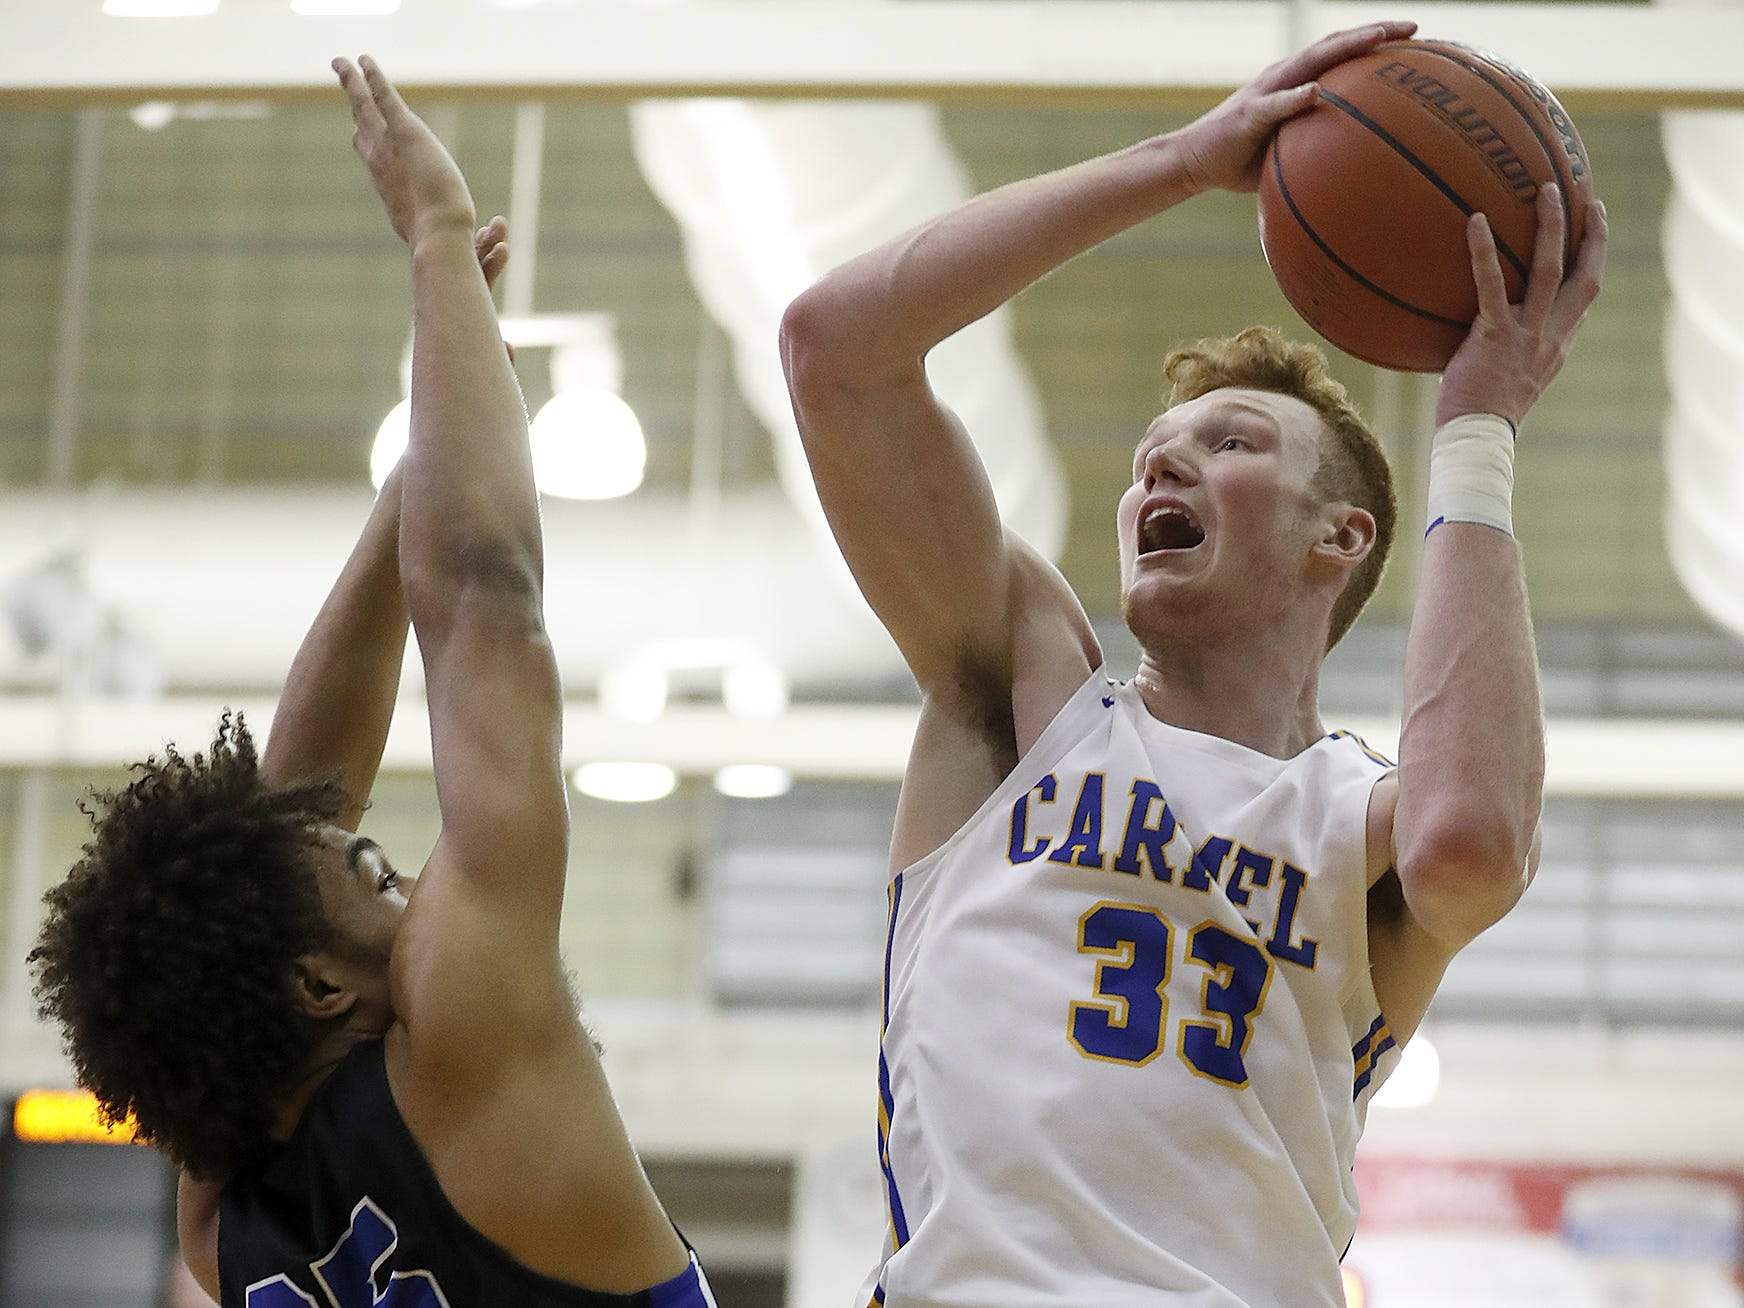 Carmel Greyhounds John Michael Mulloy (33) shoots over Hamilton Southeastern Royals Landon Morris (35) in the first half of their game at Carmel High School on Friday, Feb. 8, 2019.